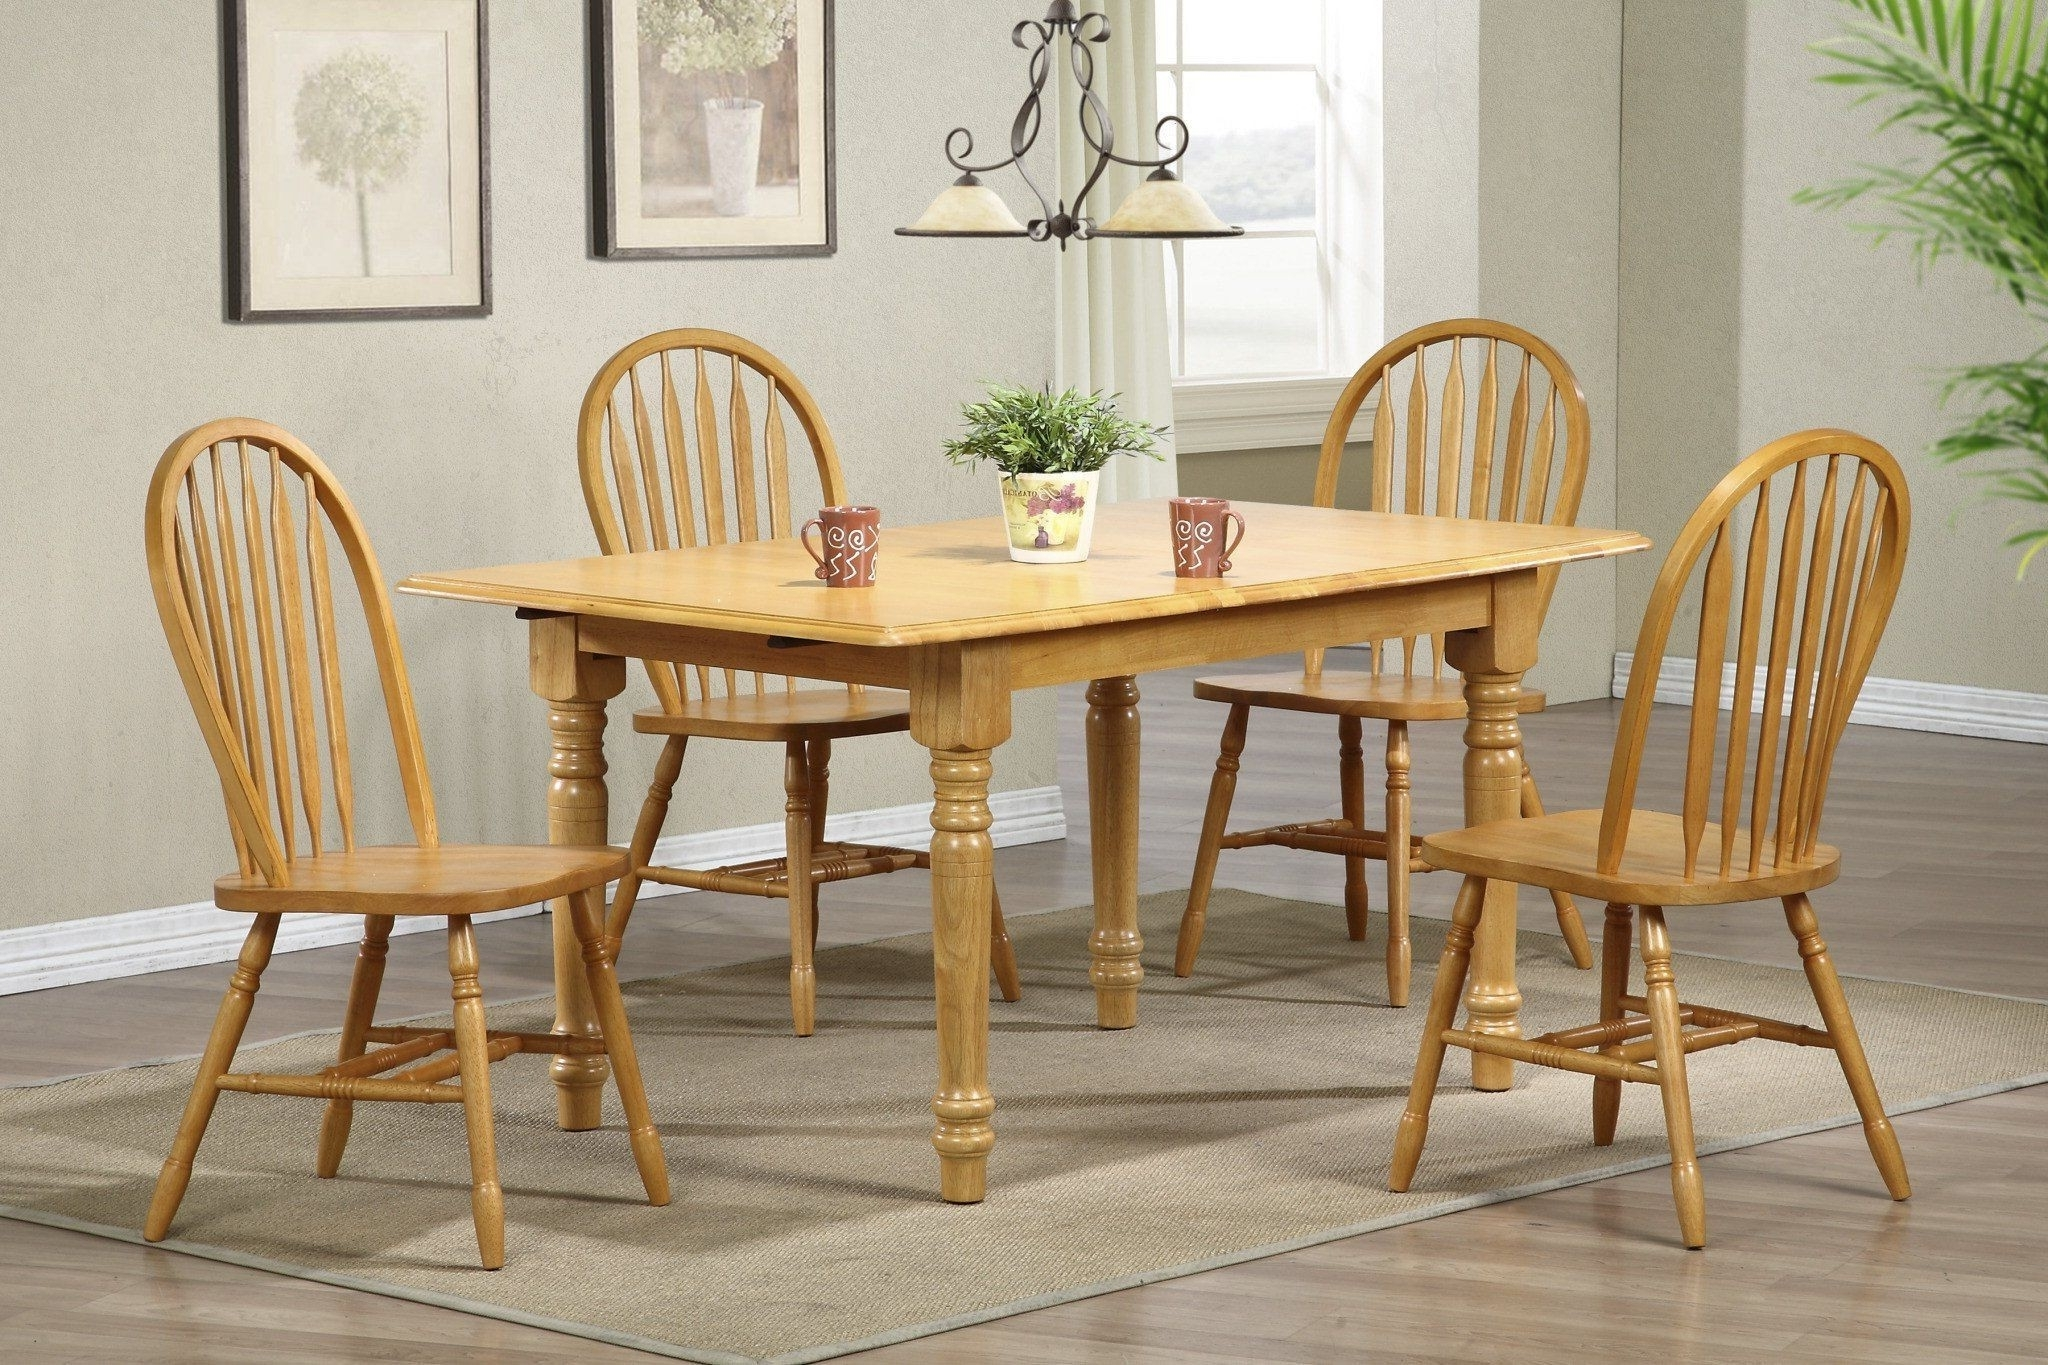 Well Liked The 21 Awesome Large Round Folding Dining Table – Welovedandelion For Large Folding Dining Tables (View 25 of 25)